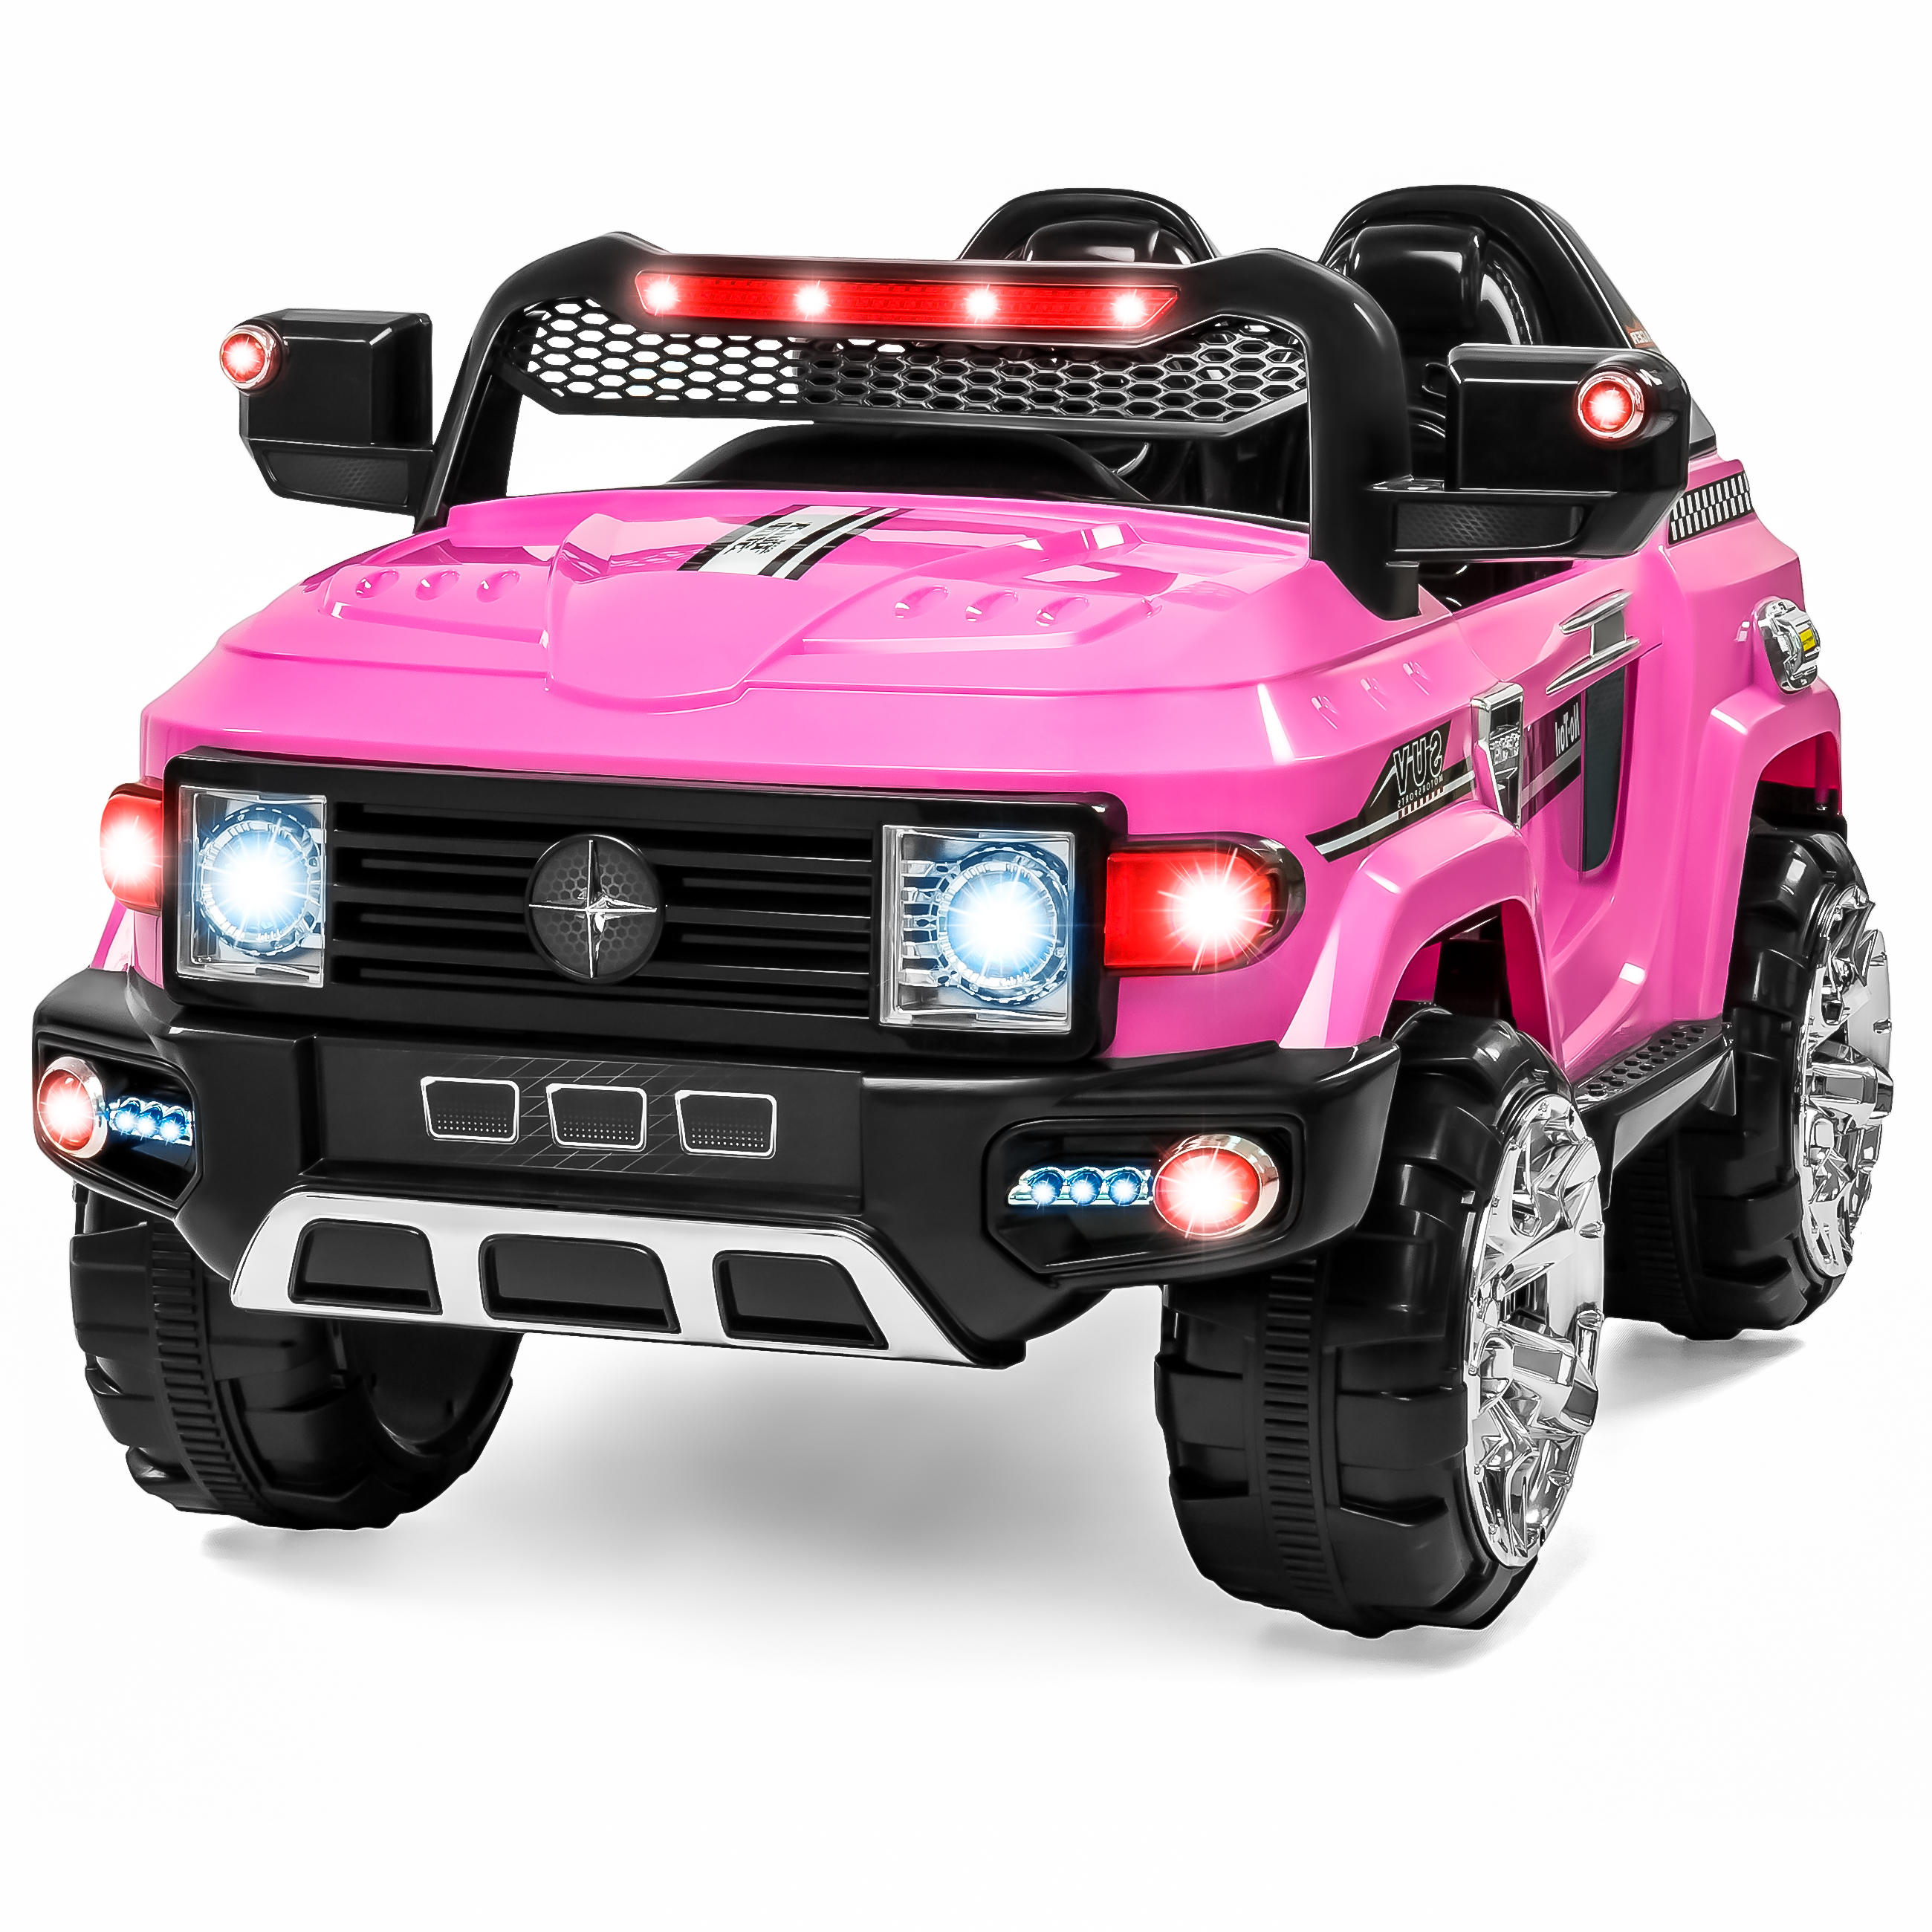 Best Choice Products 12V MP3 Kids Ride-On Truck Car RC Remote Control, LED Lights AUX and Music - Pink